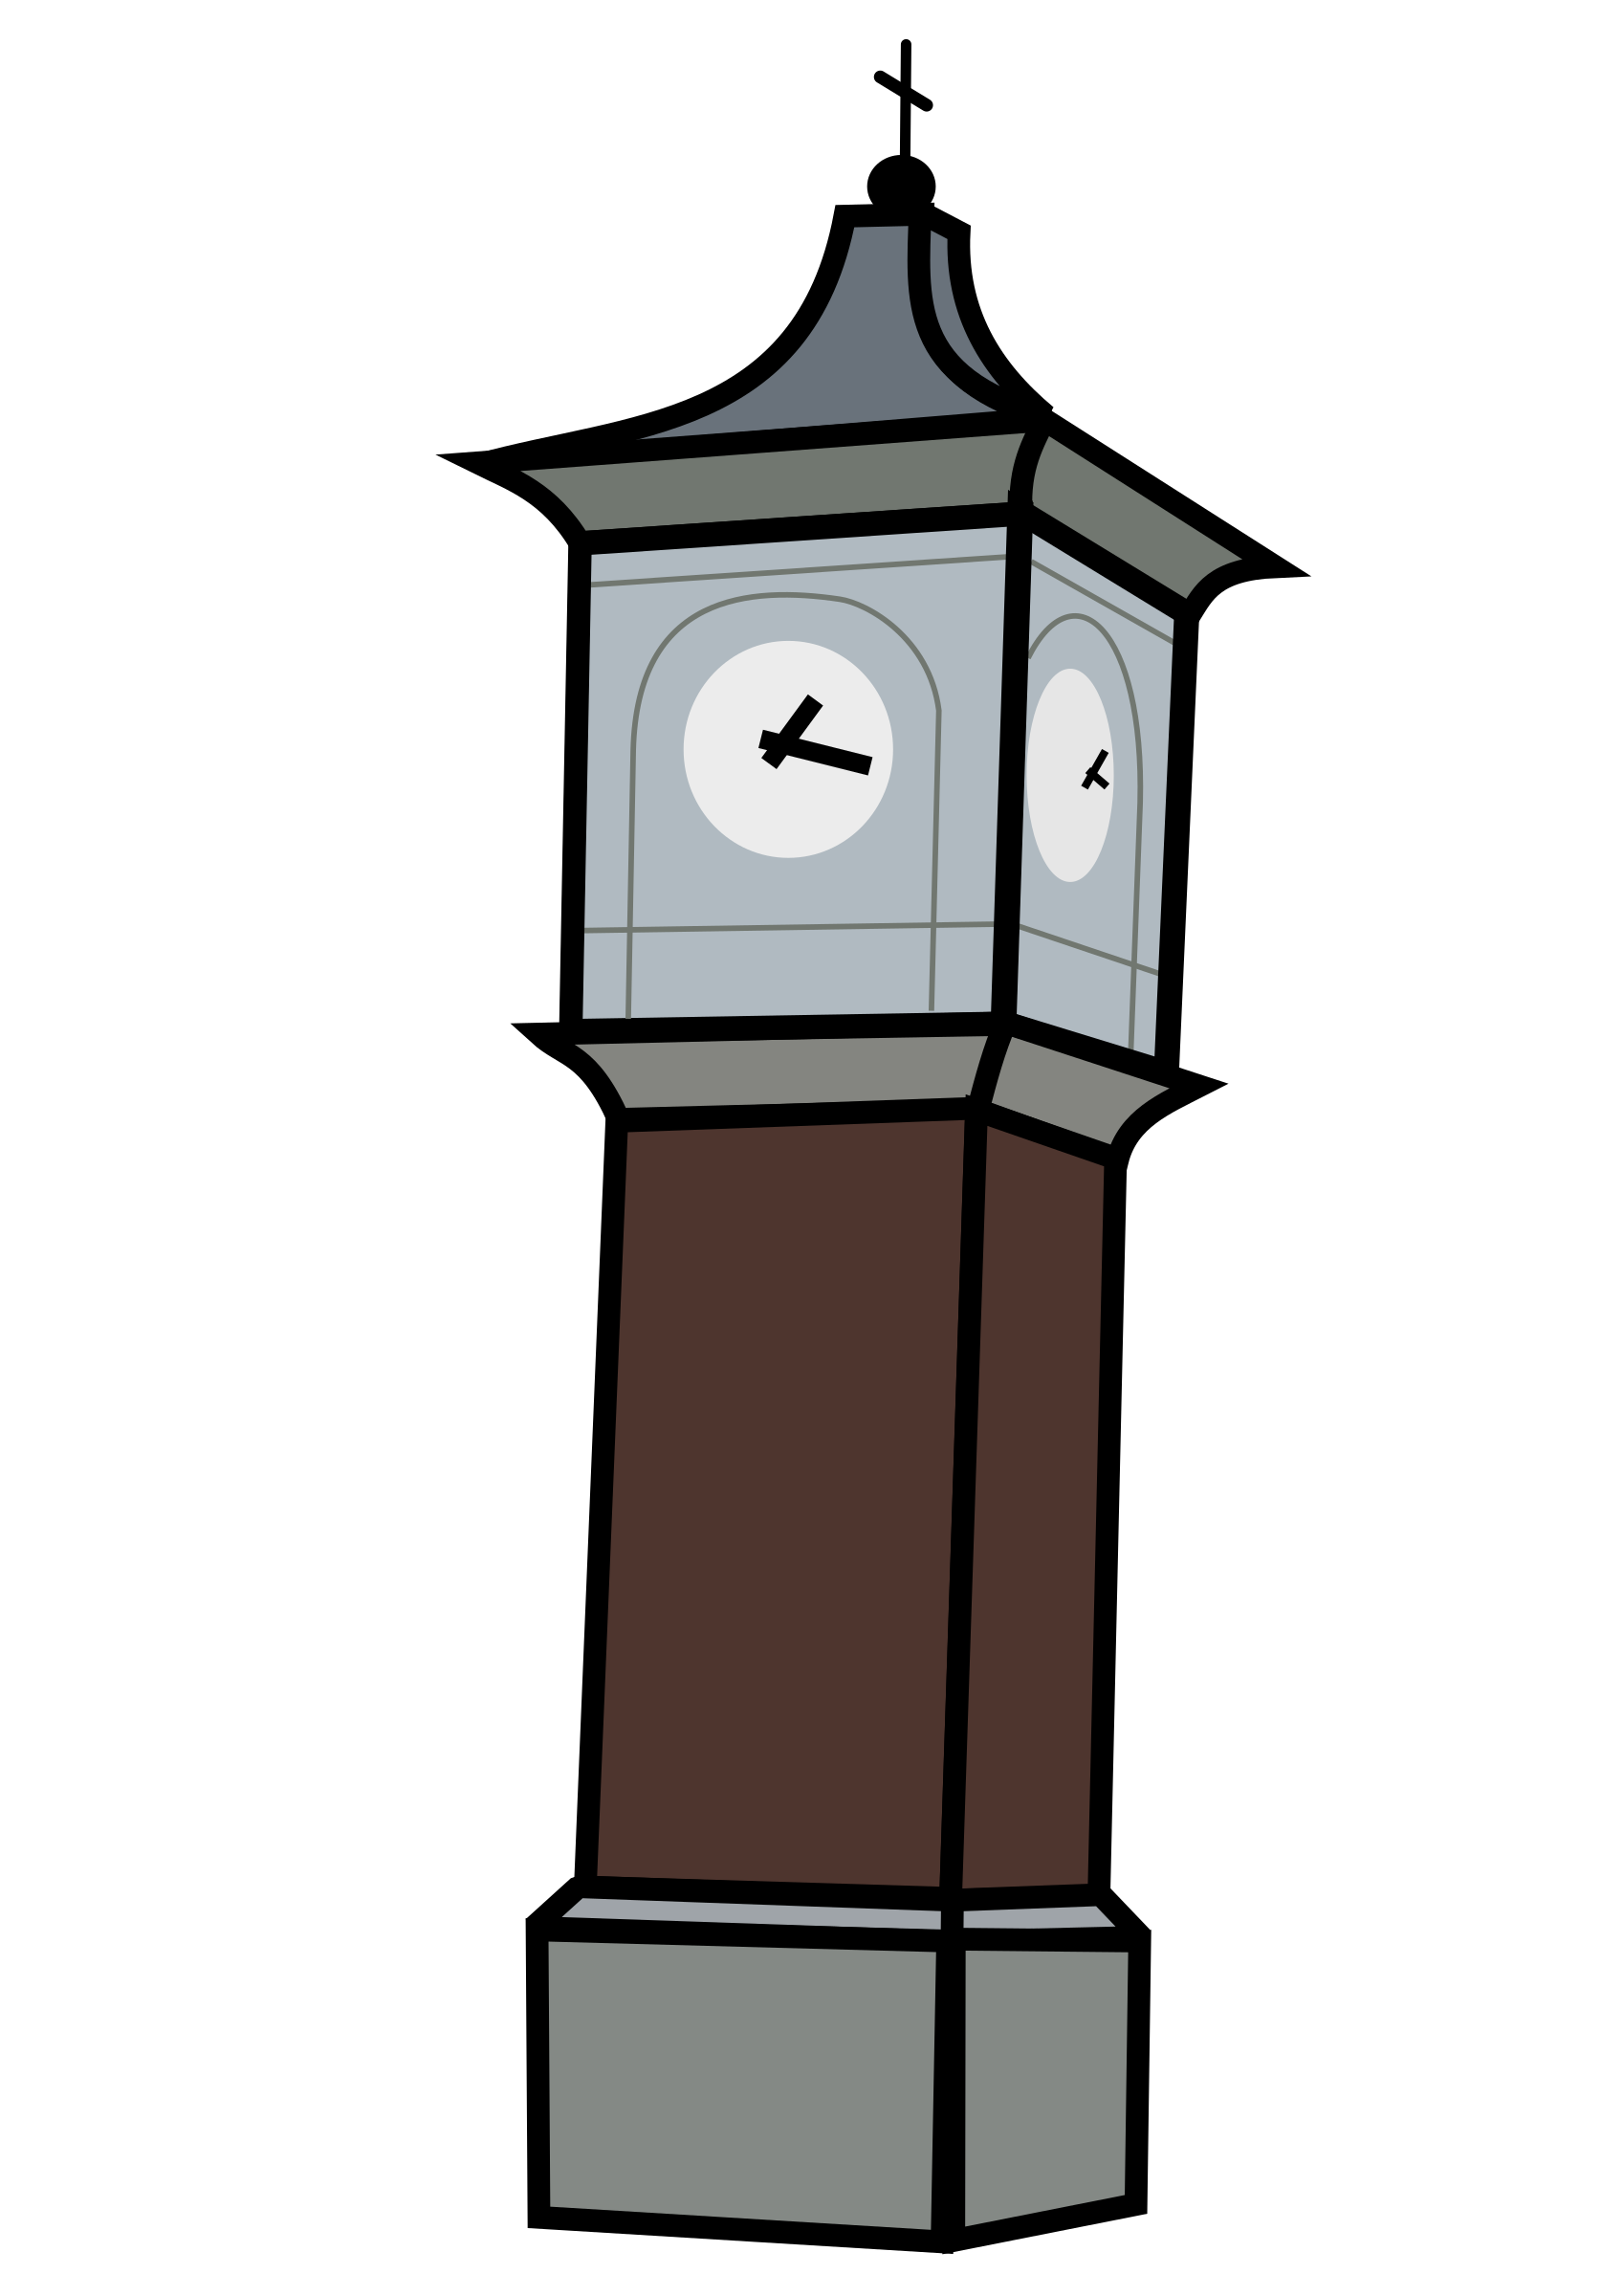 Clock Tower Clipart.